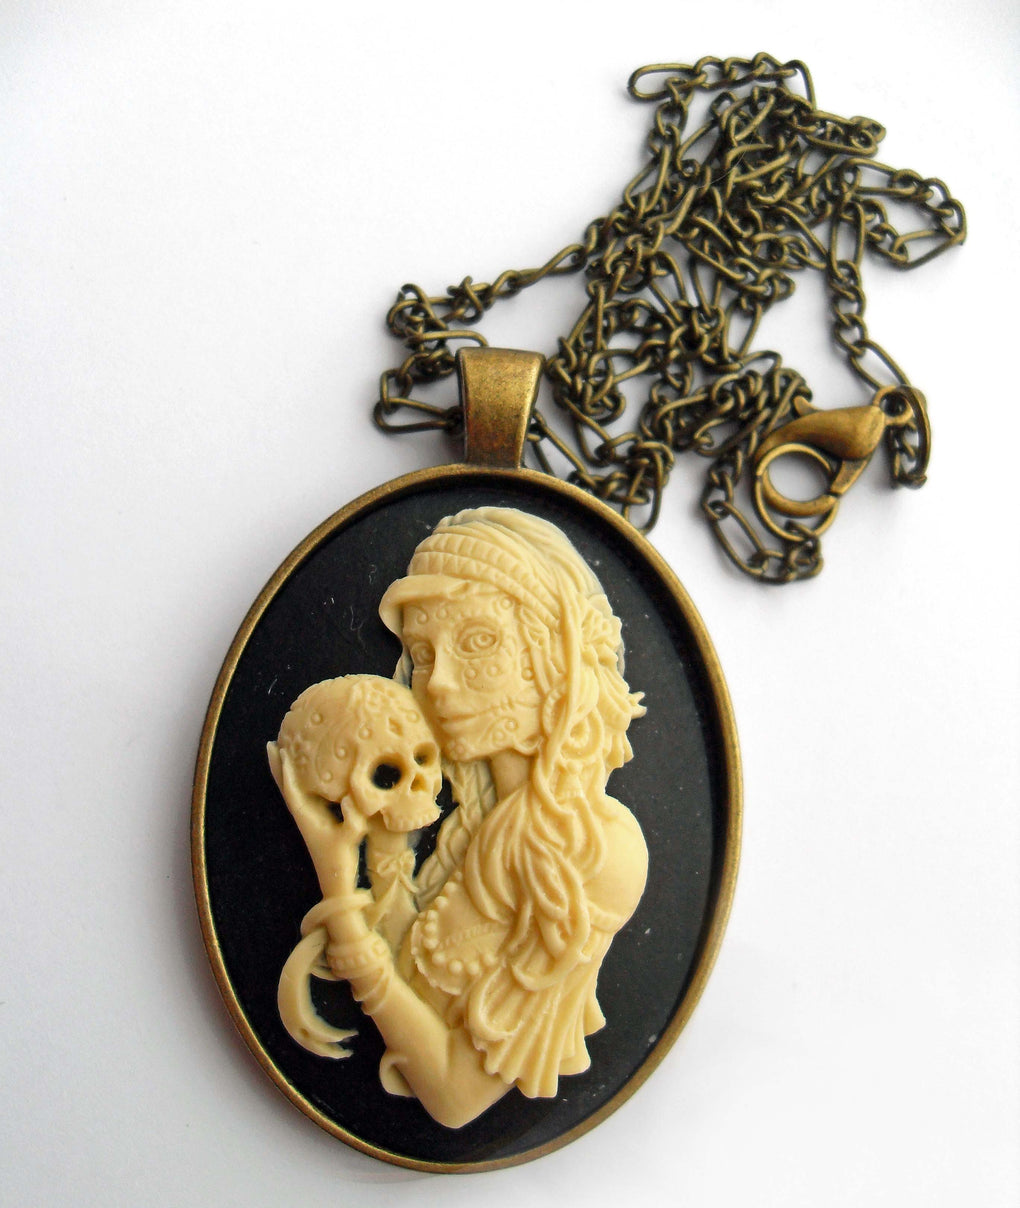 GYPSY WITCH CAMEO NECKLACE